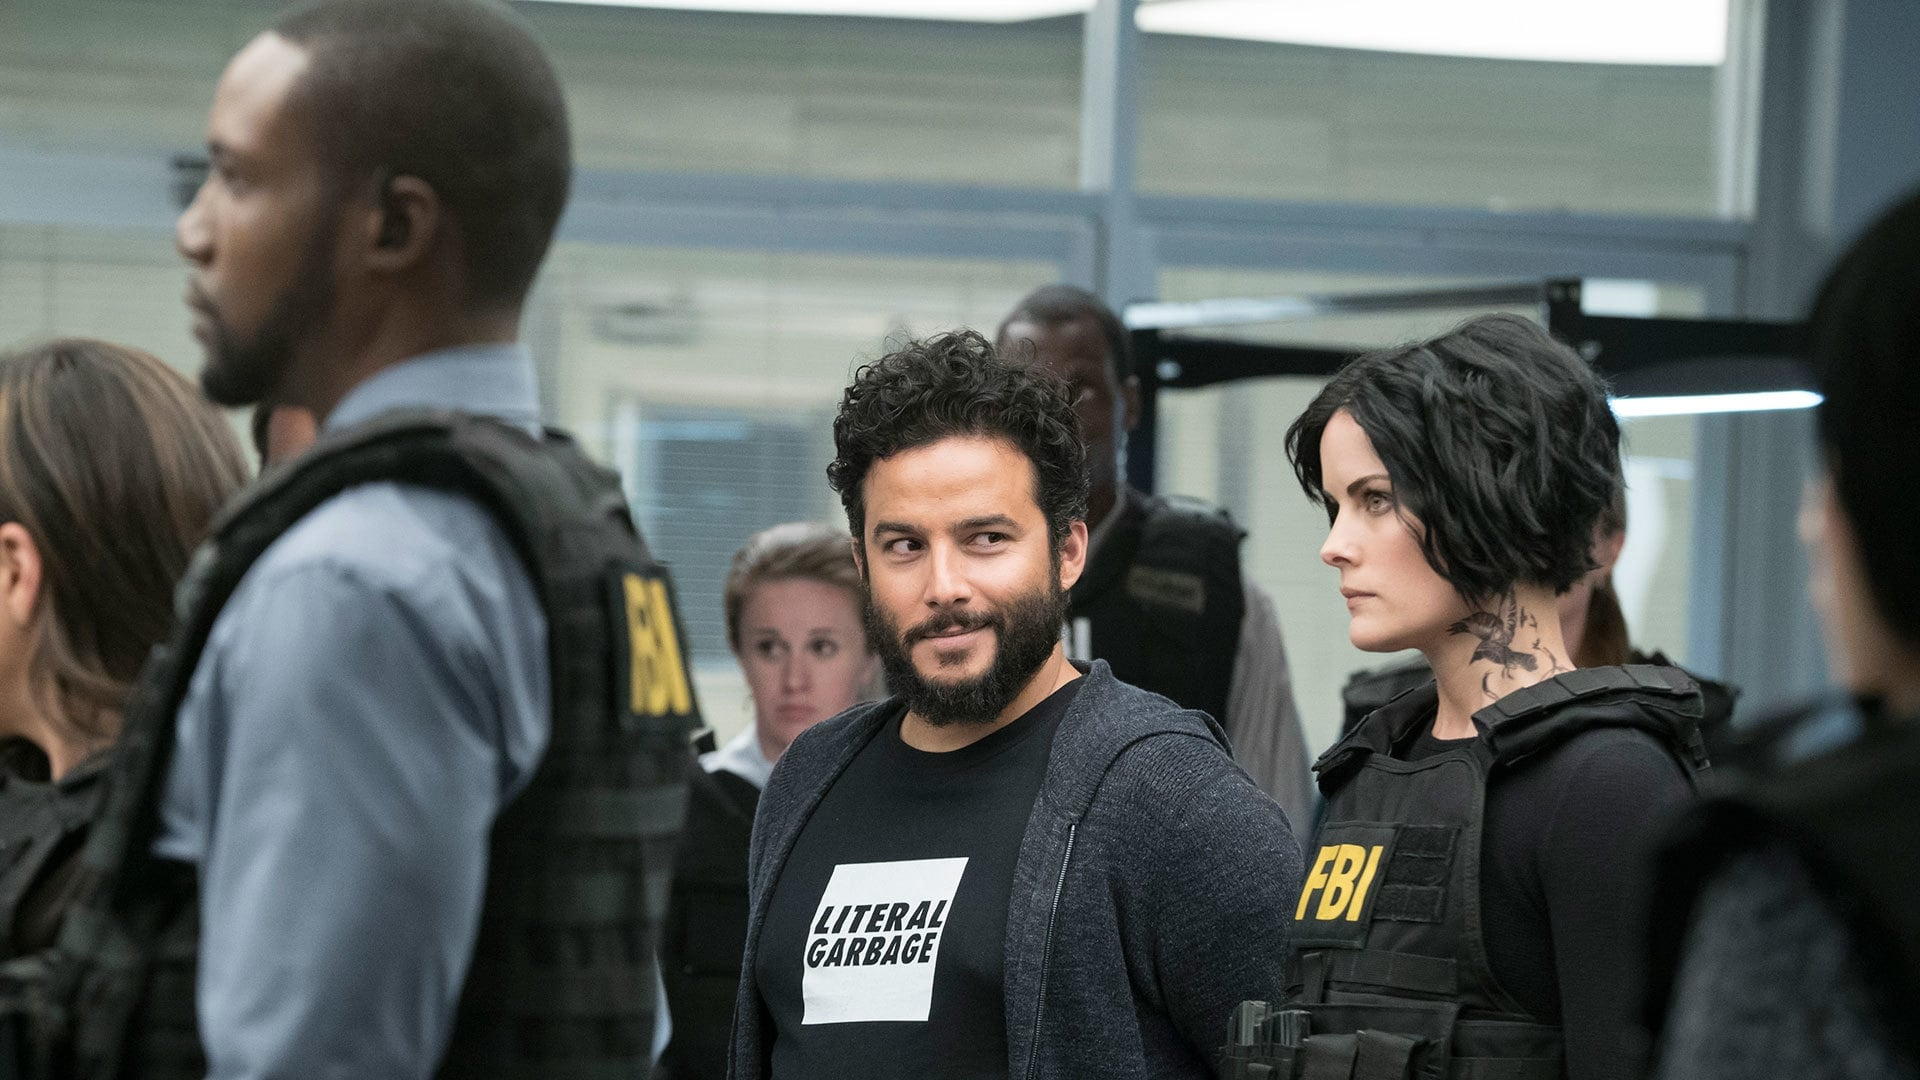 blindspot return date 2016 @sadiew9 according to geektown the series doesn't yet have a return date (silver)box, 2 mini boxes since june 2016, sky q blindspot season 3 episode 9.